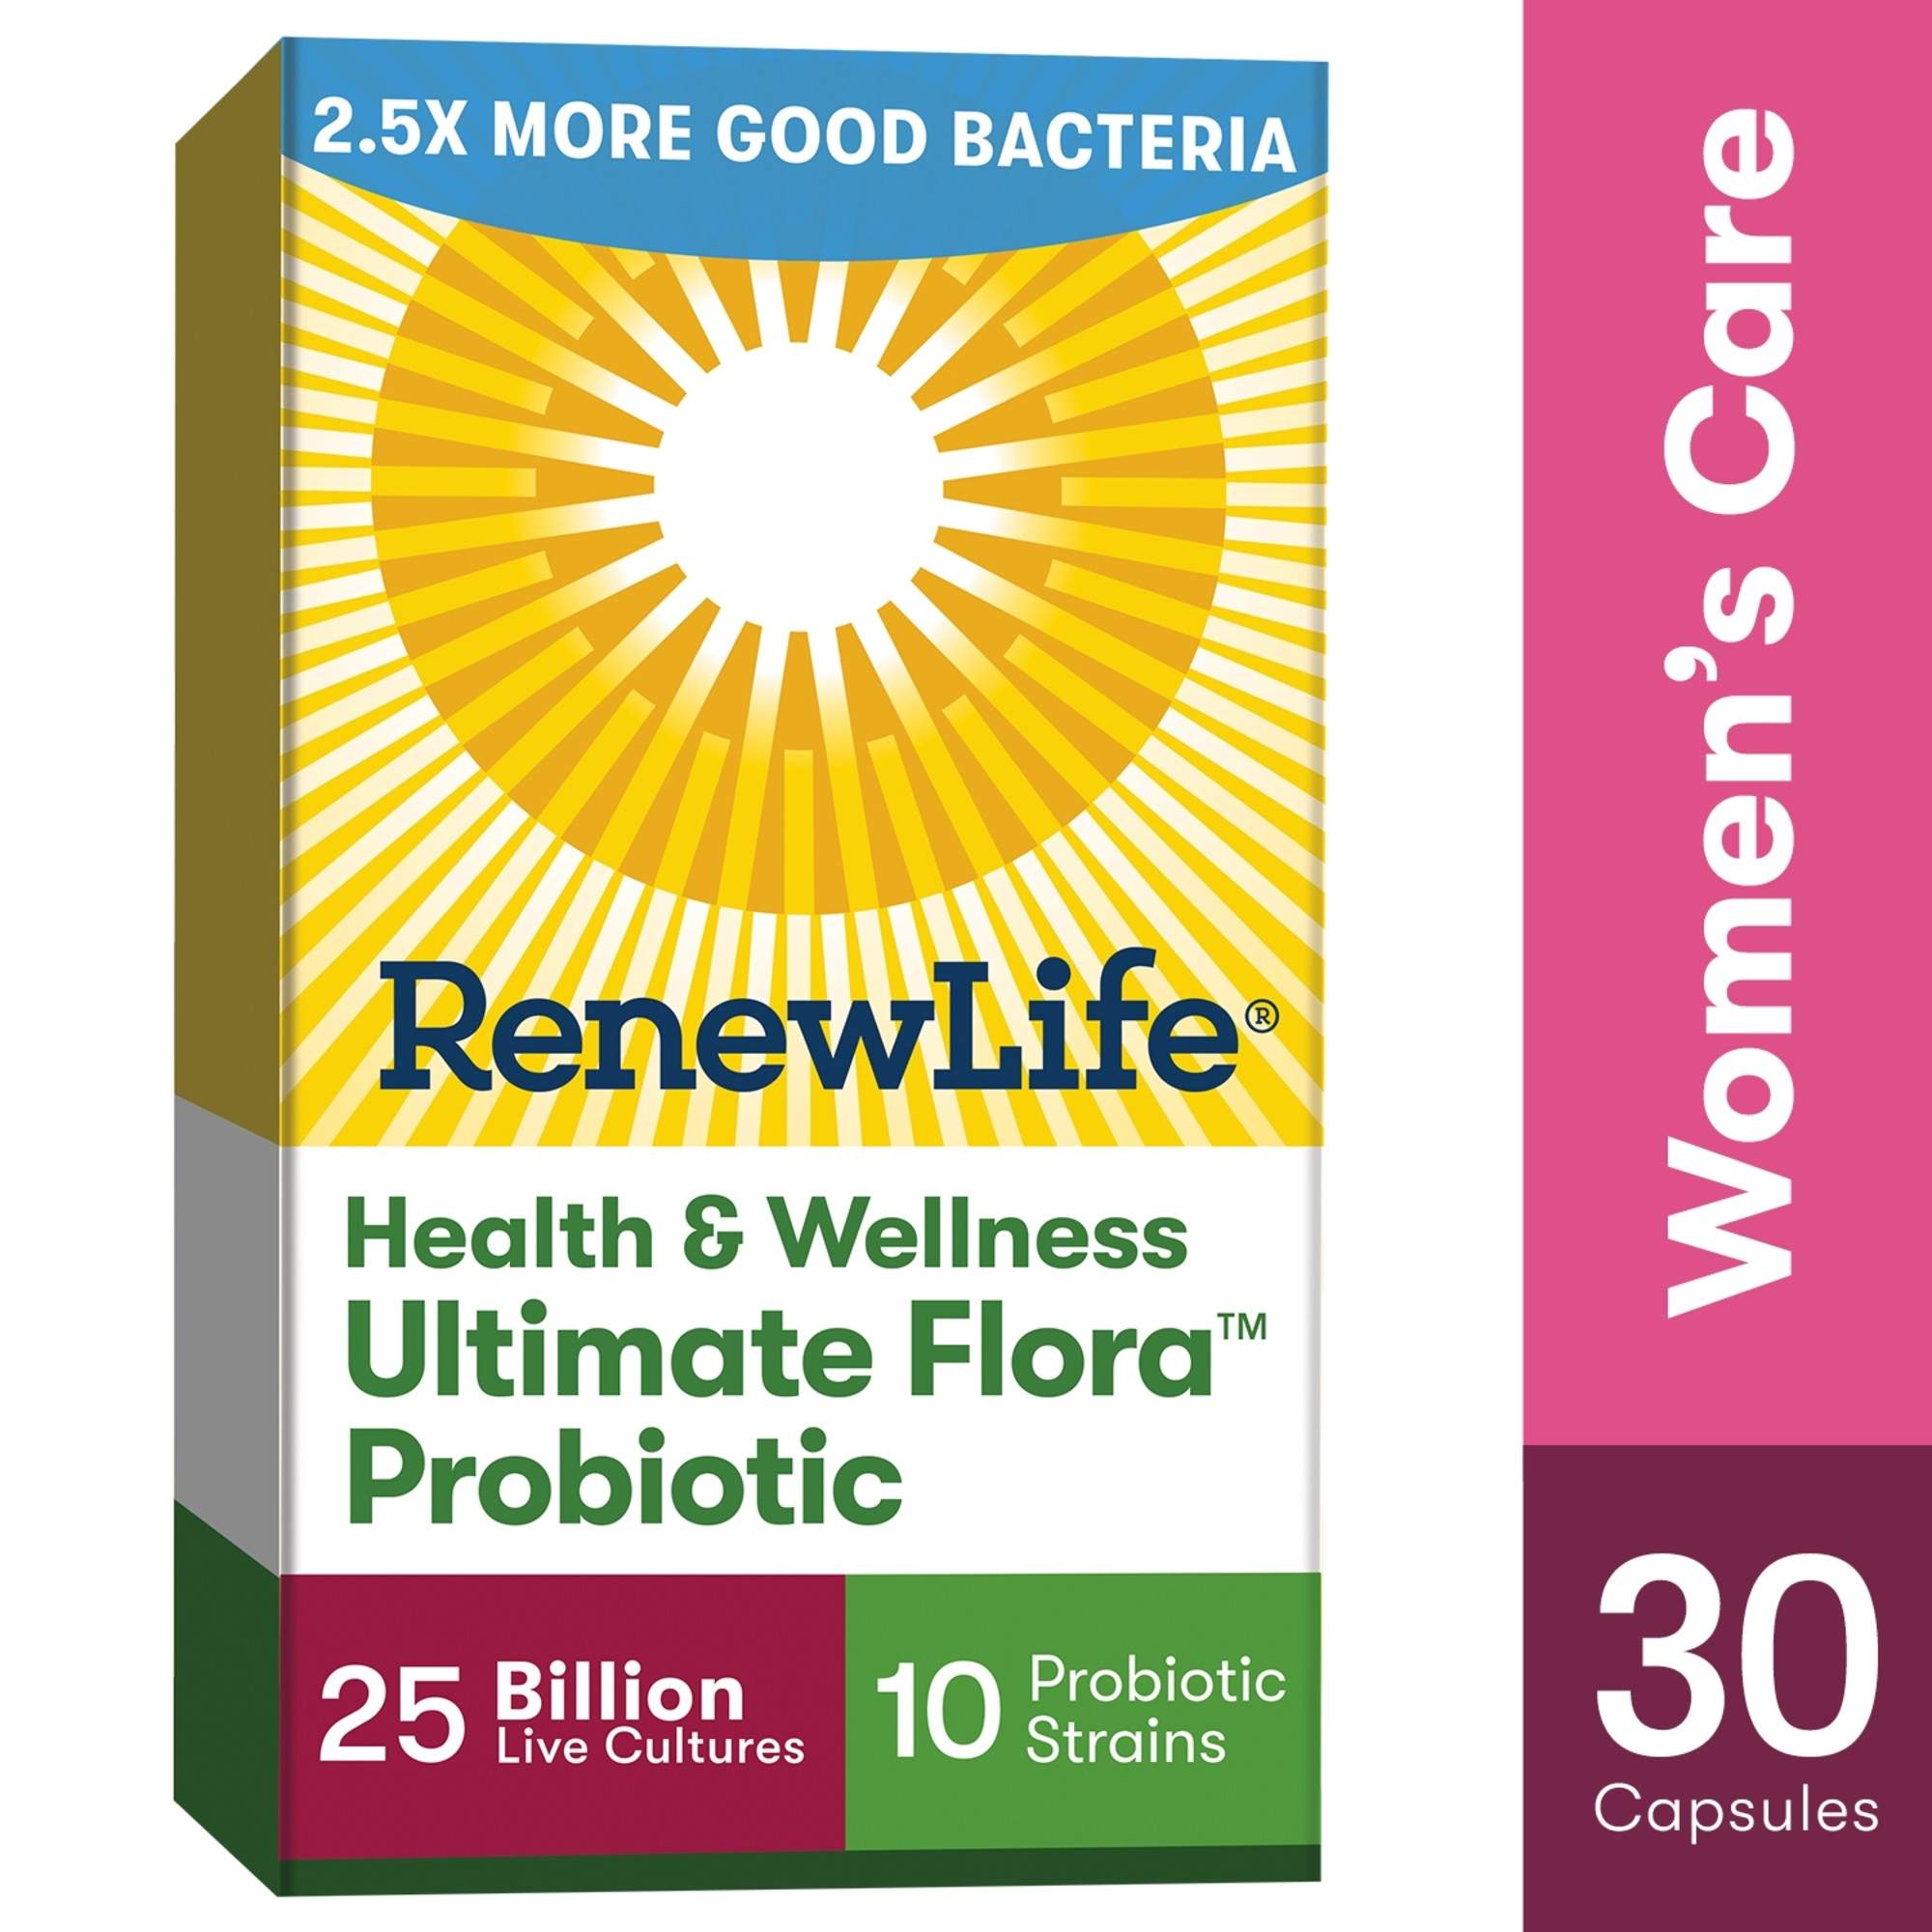 Renew Life Women S Probiotic 1 Women S Probiotic 25 Billion 30 Ct Walmart Com Walmart Com